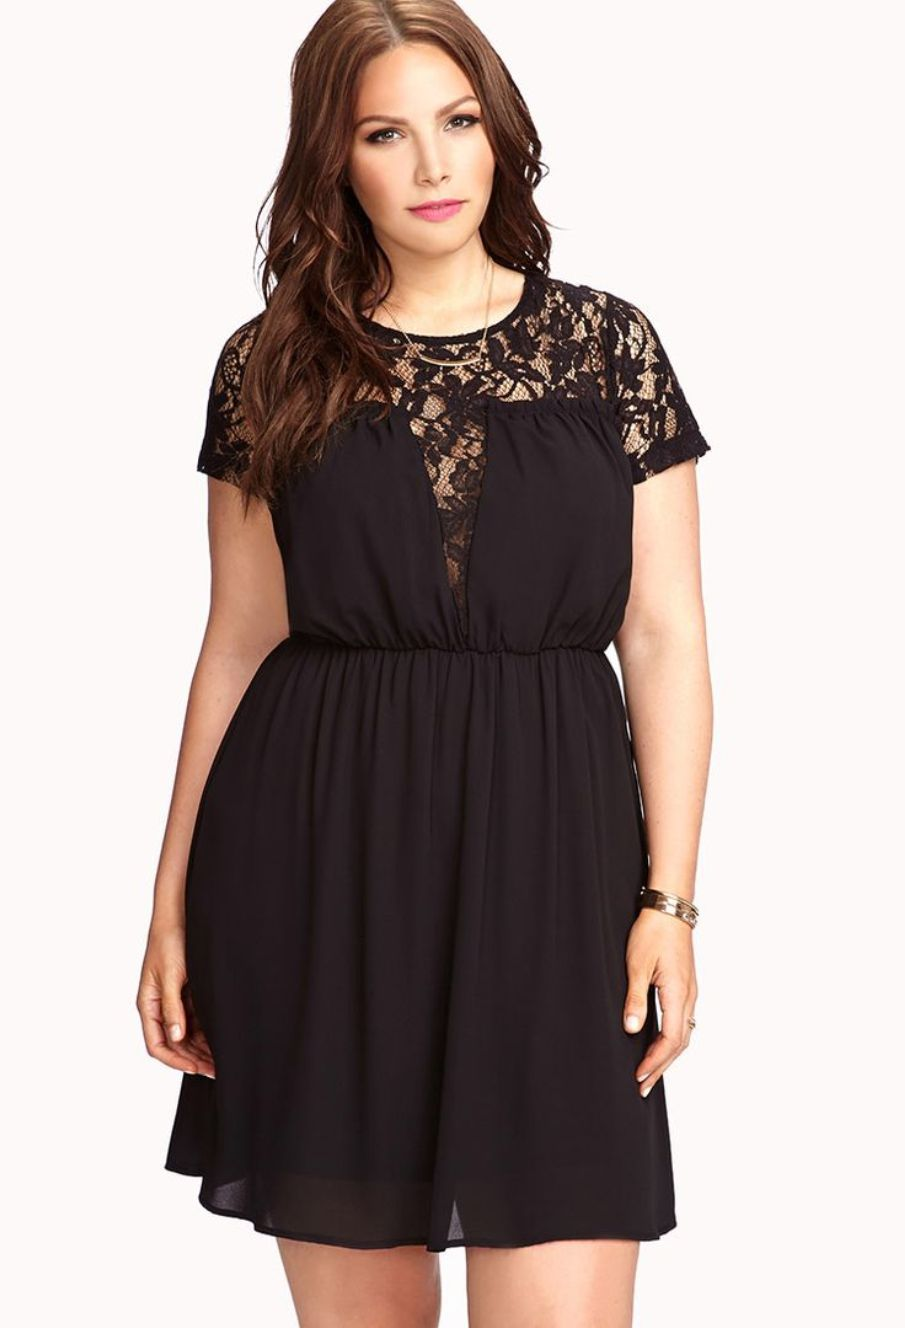 8e17bd1aee forever21 little black dress for plus size women lace style | I'd ...